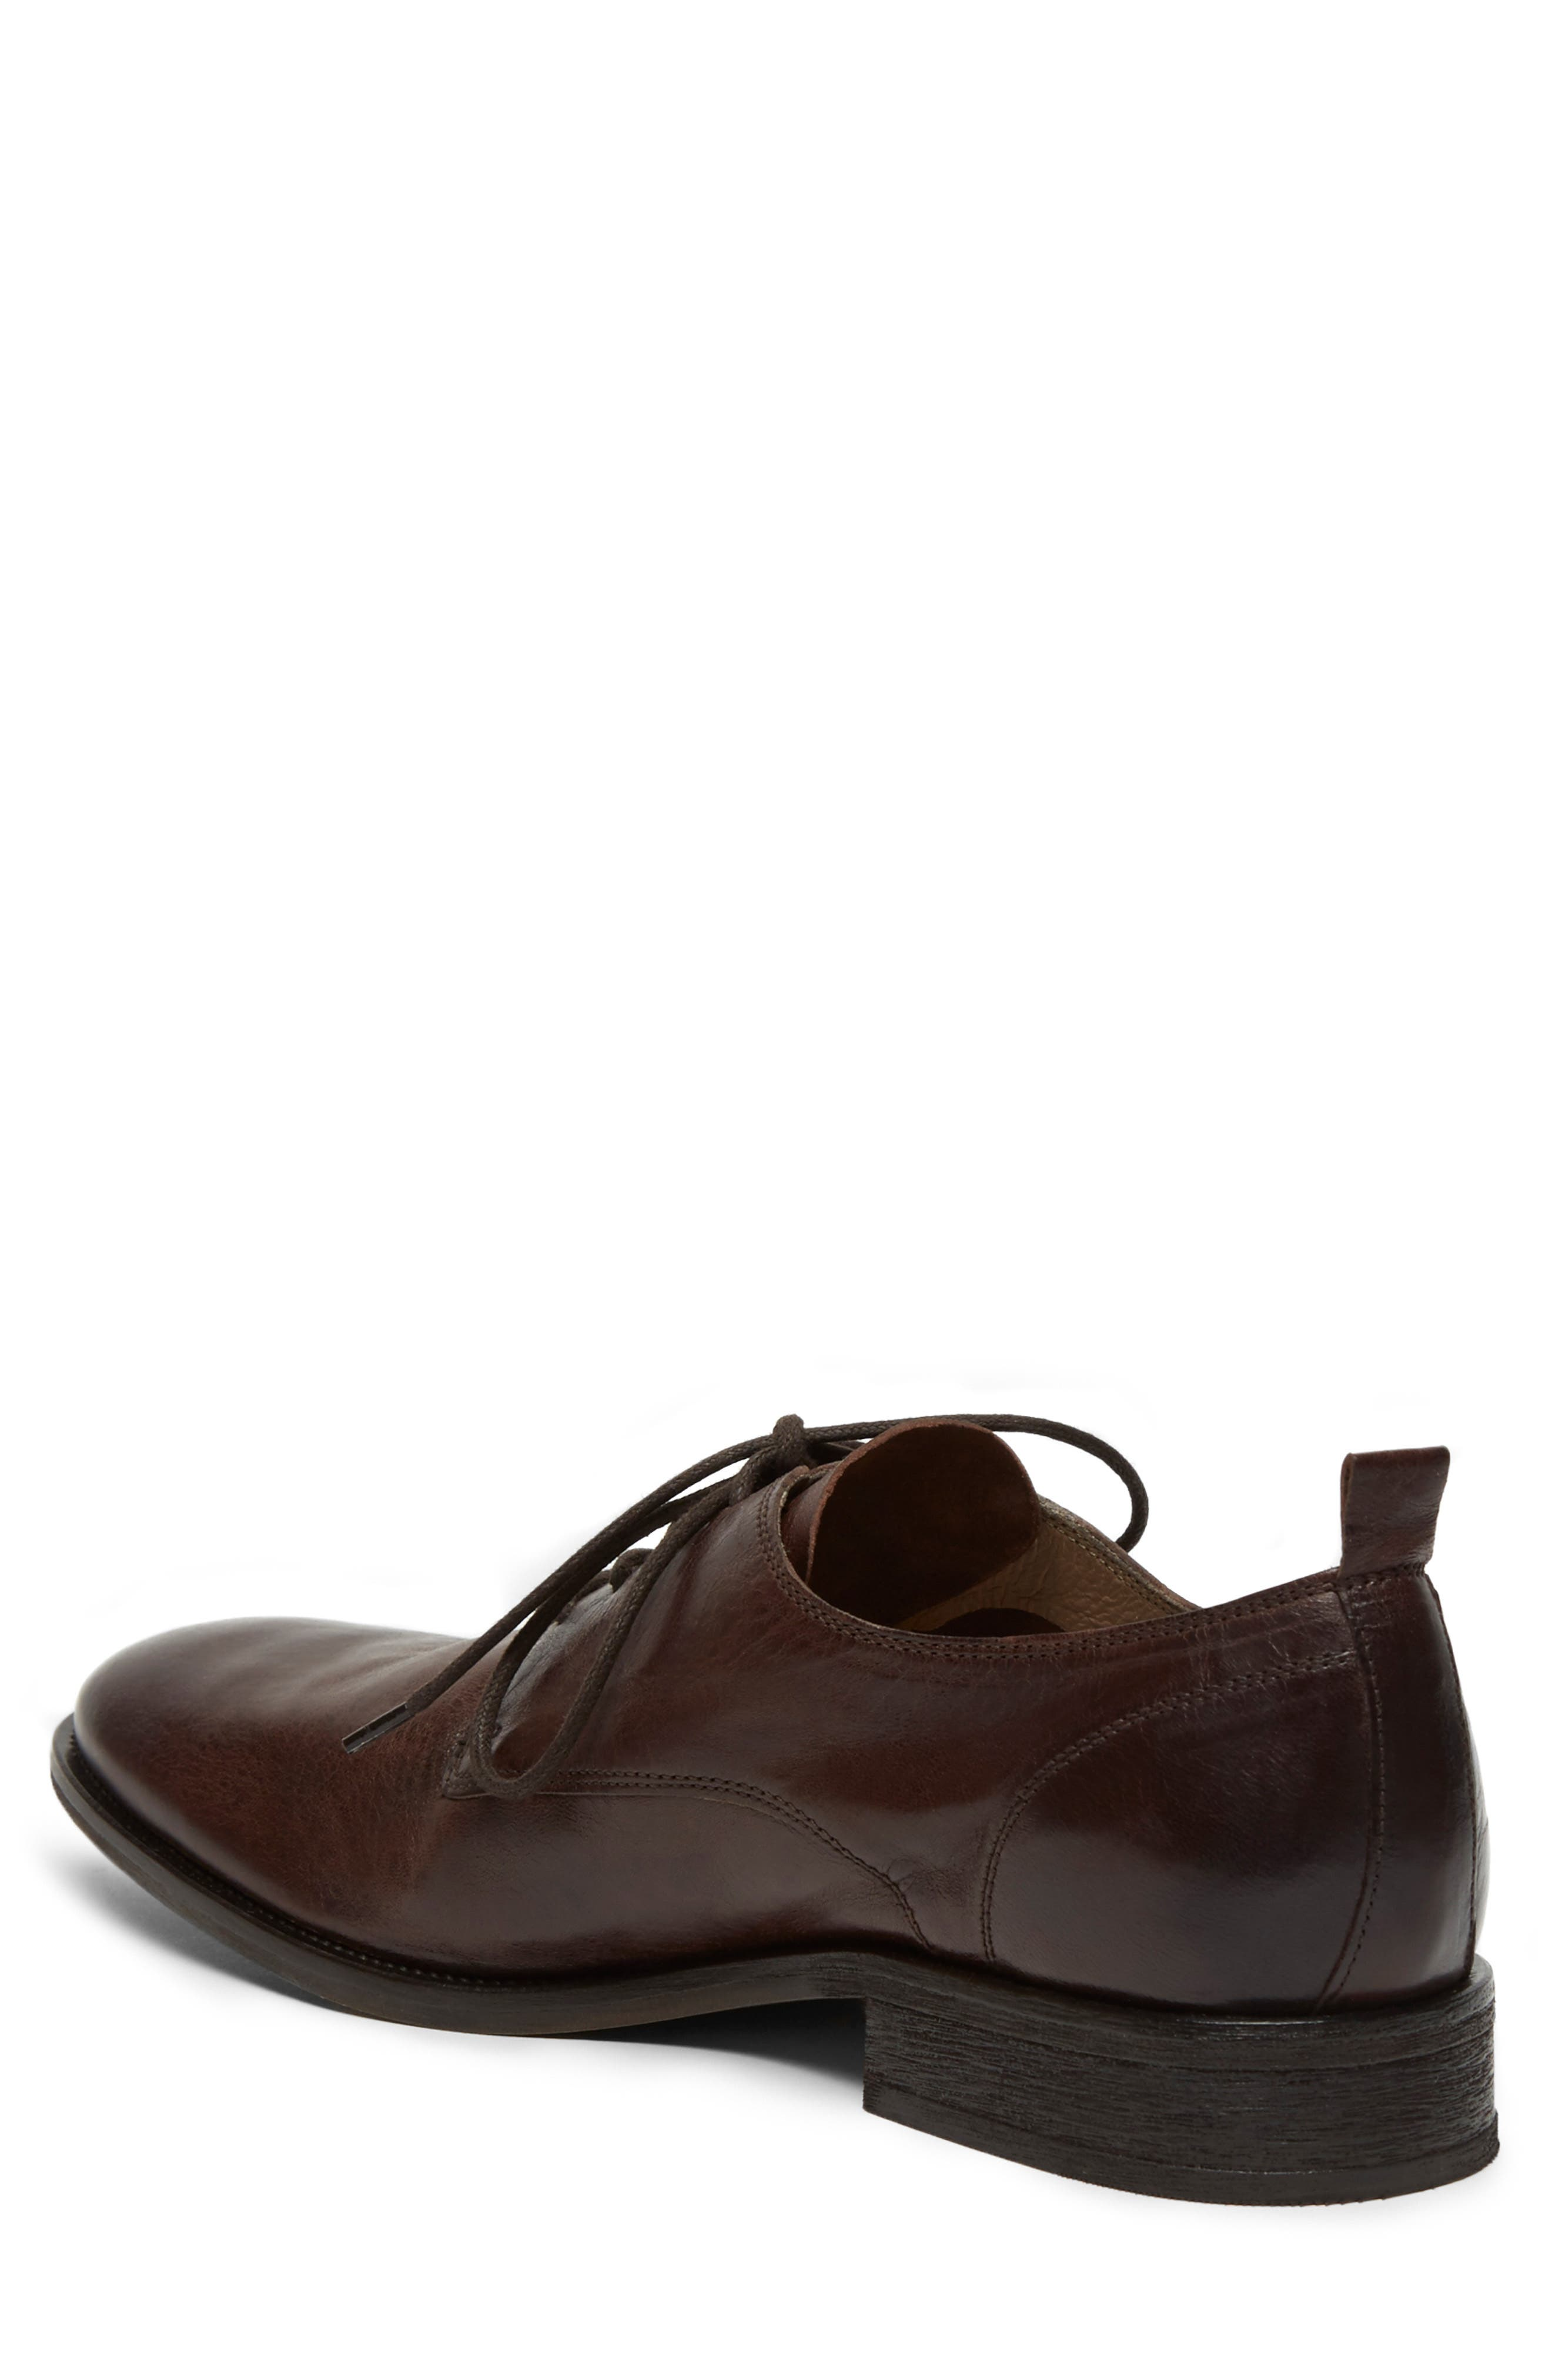 Indio Plain Toe Derby,                             Alternate thumbnail 2, color,                             BROWN LEATHER